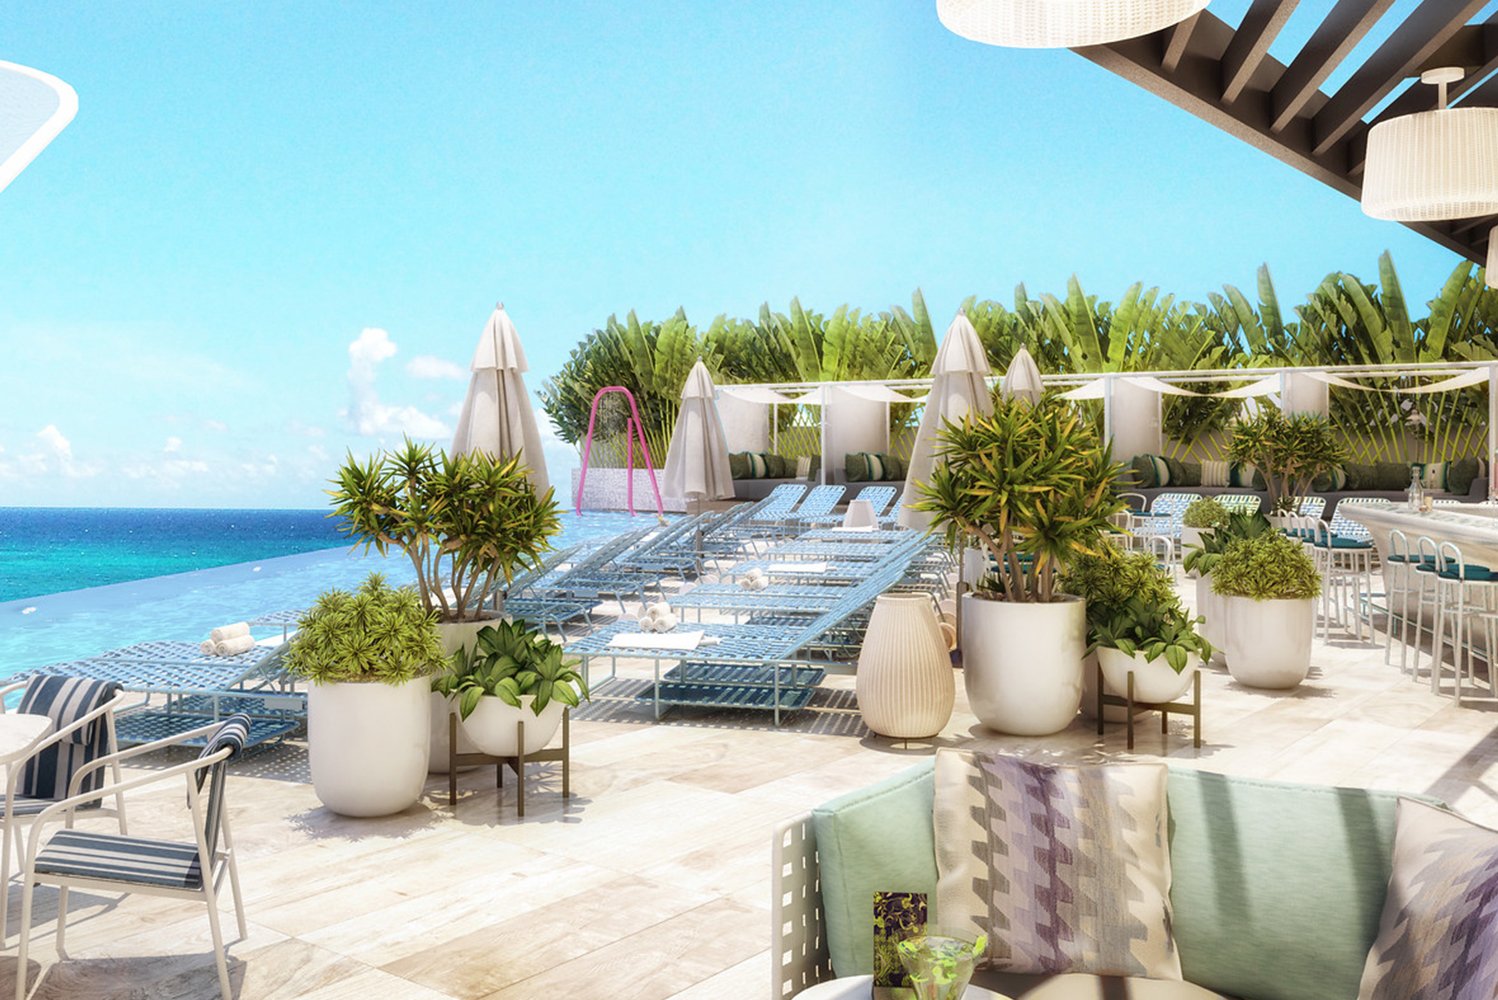 The property will have a poolside lounge, infinity pool, cabanas and By the Pool, the property's outdoor bar.